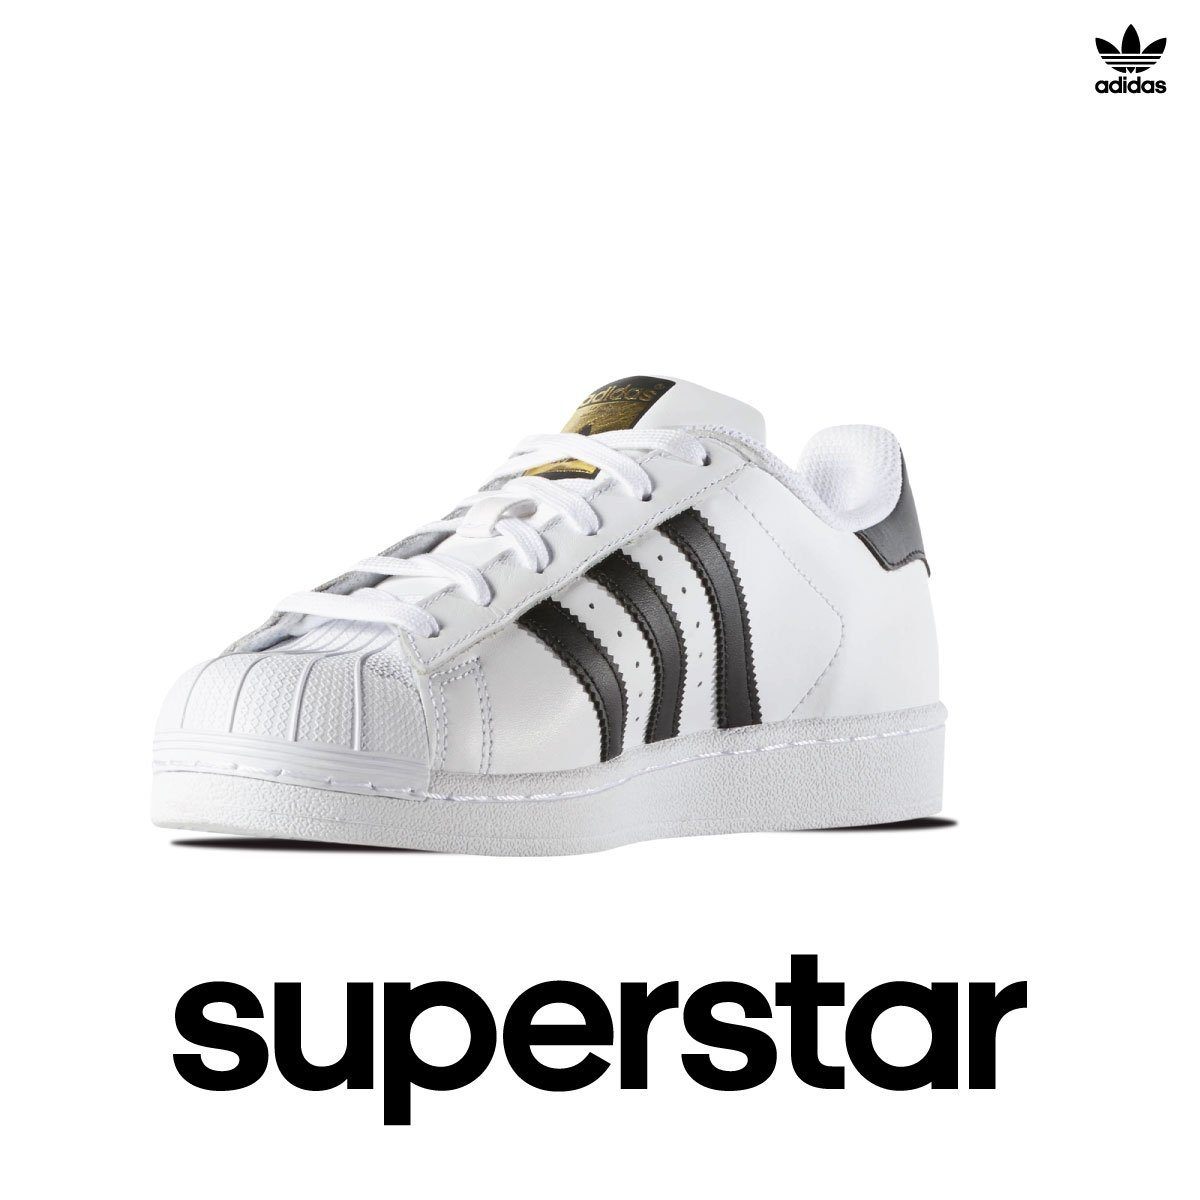 Hibbett Sports On Twitter The Adidas Superstars In In